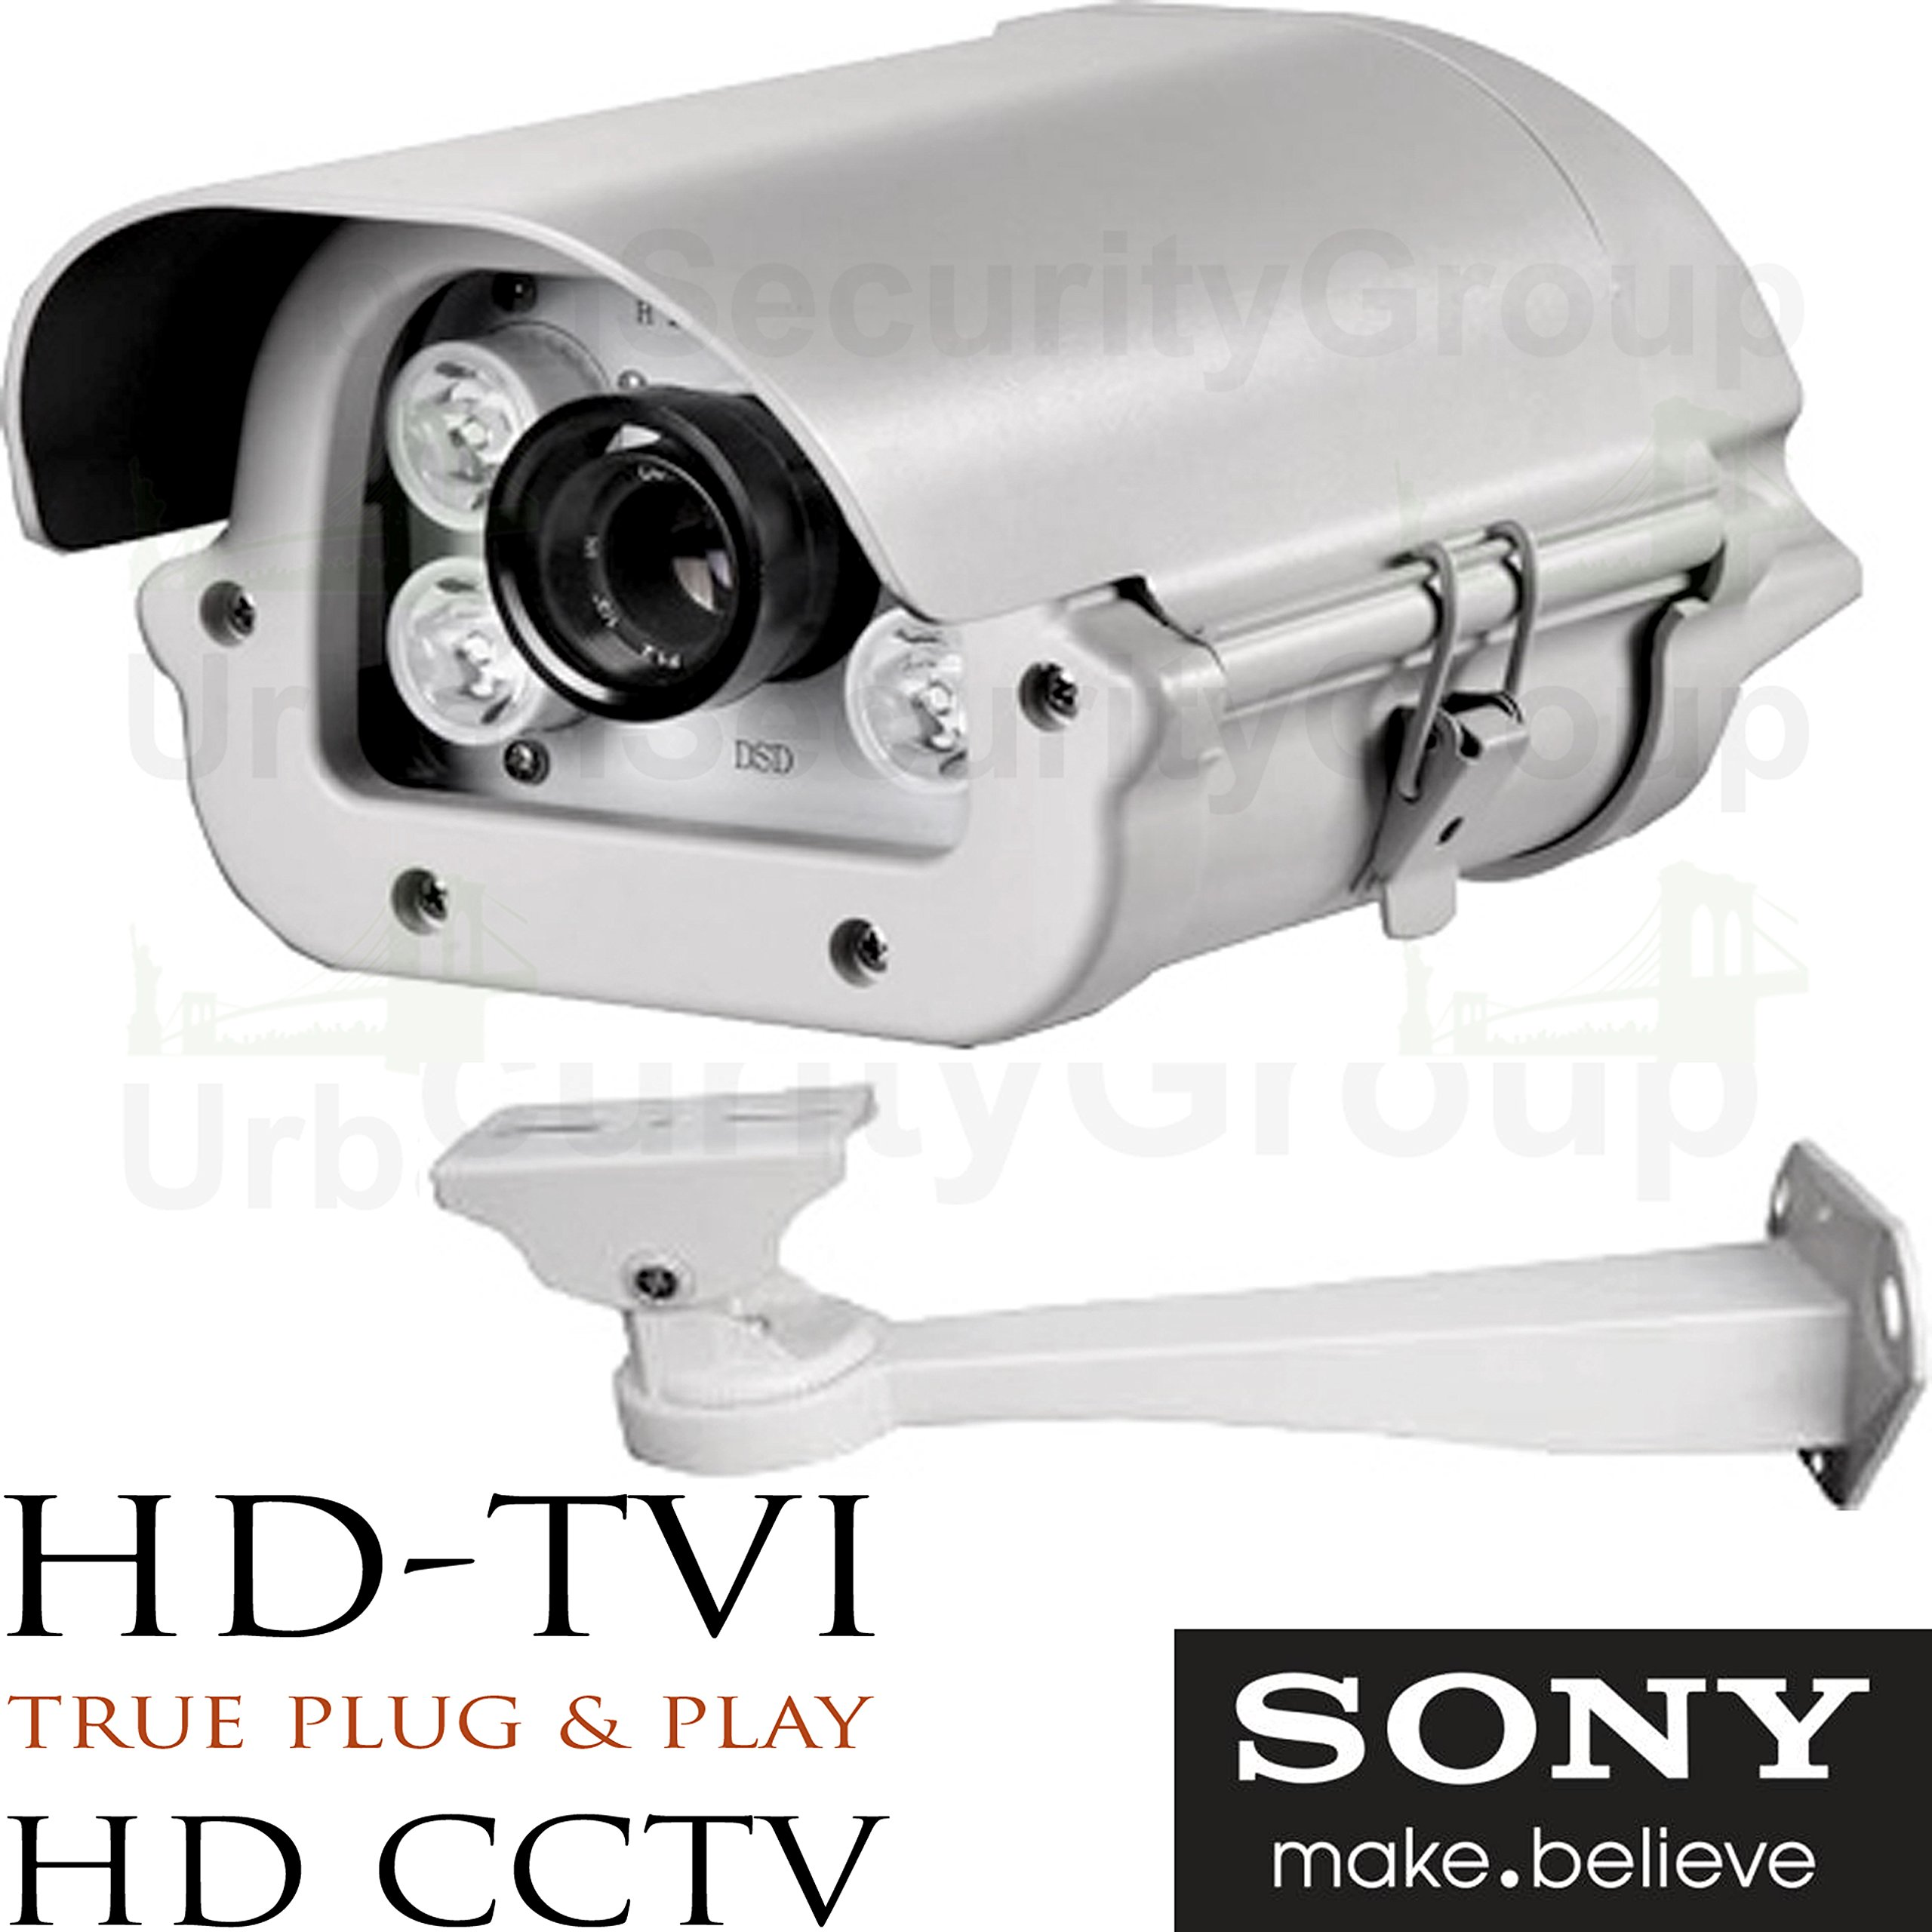 USG 2.4MP 1080P Sony Chipset License Plate Recognition LPR Capture Bullet Security Camera : 5-50mm Vari-Focal HD Lens : 4x Array Infrared LEDs : HD-TVI, HD-CVI, AHD, Analog CCTV Format, Business Grade